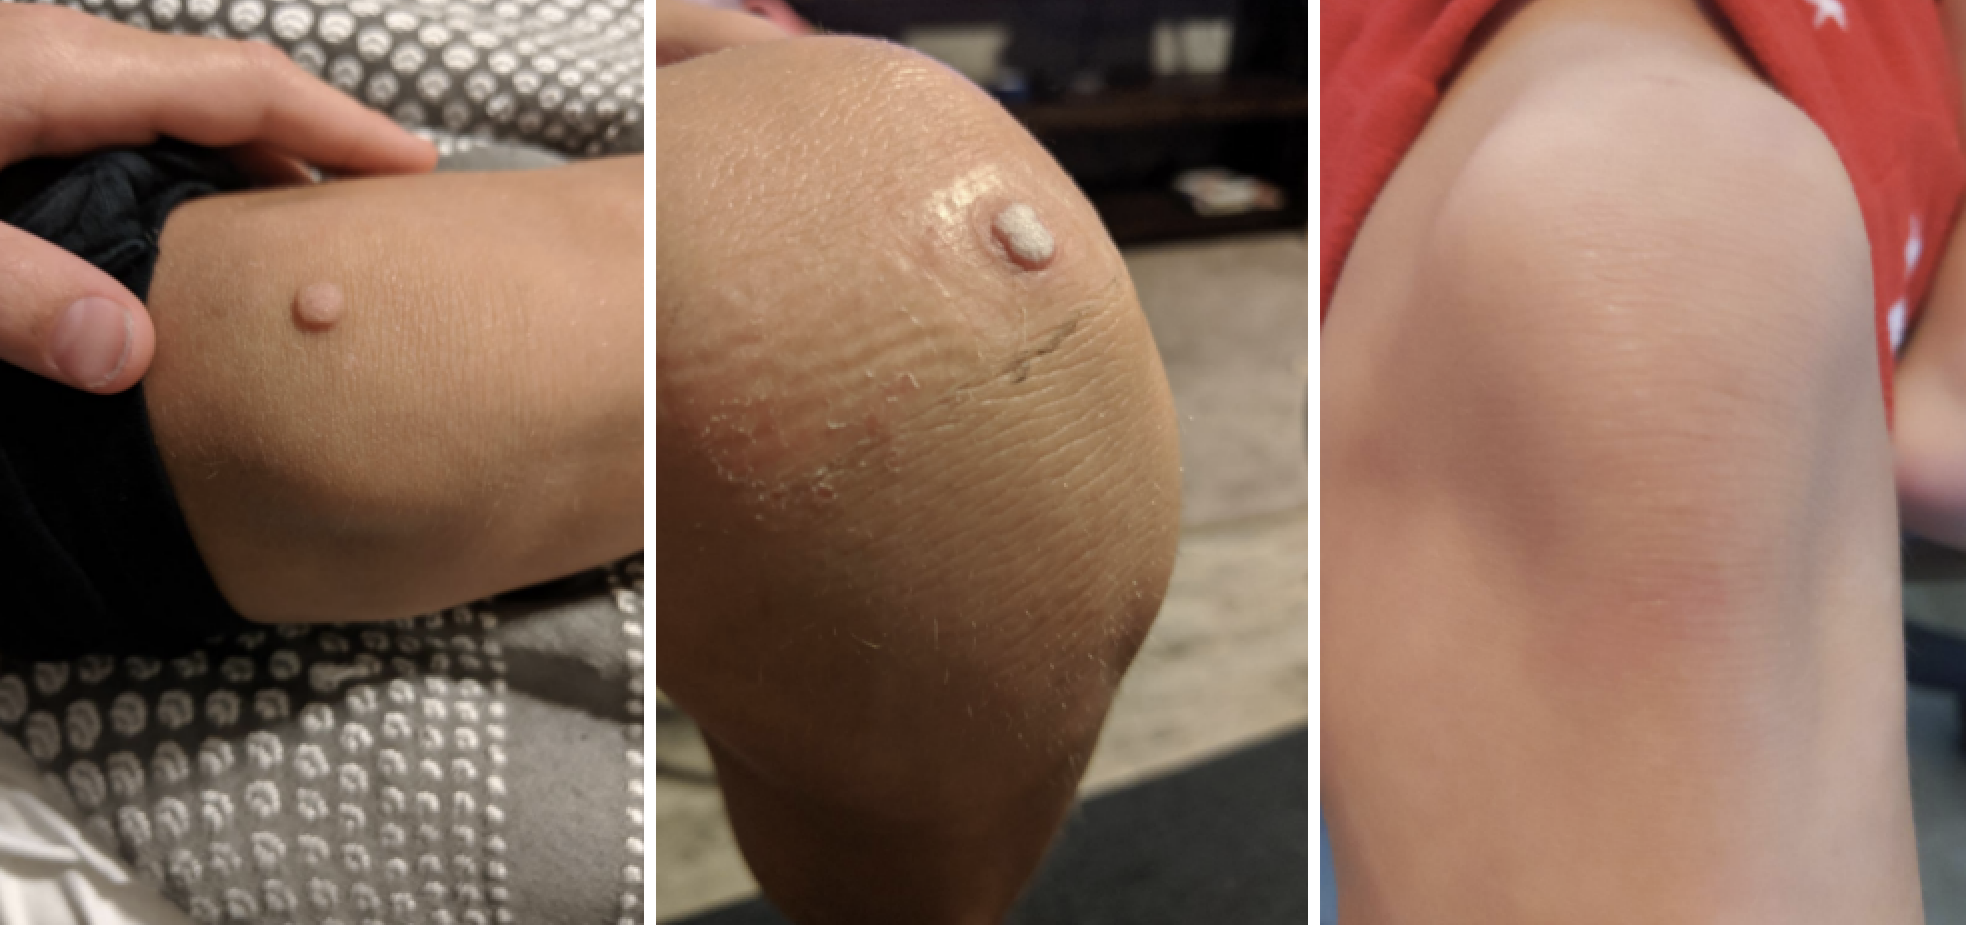 Before, during, after progression pic of reviewer's knee with a large wart. The after pic shows no wart after using the bandages.